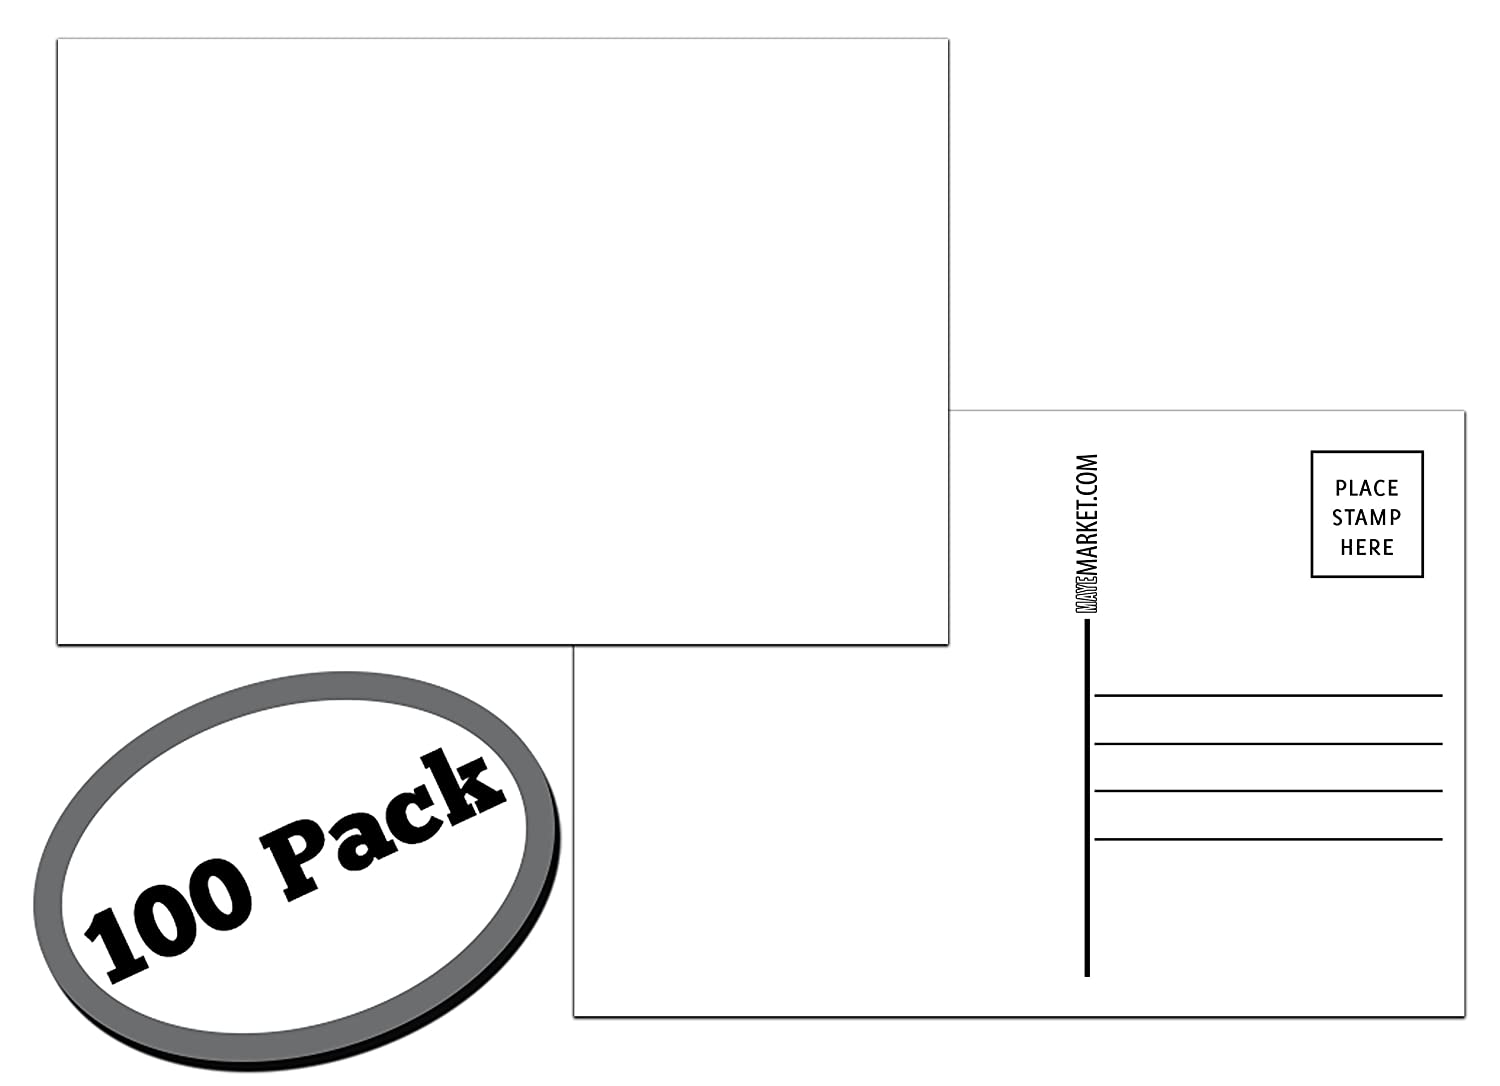 100 Pack of Blank Postcards. Each Post Card in This Patriotic, Bulk Set is 4 x 6, USPS Compliant (mailable), and Made in USA. Mail to Voters to get Votes. Flip Side is Plain White and unused. (Blank) 71rx2iEaHPL